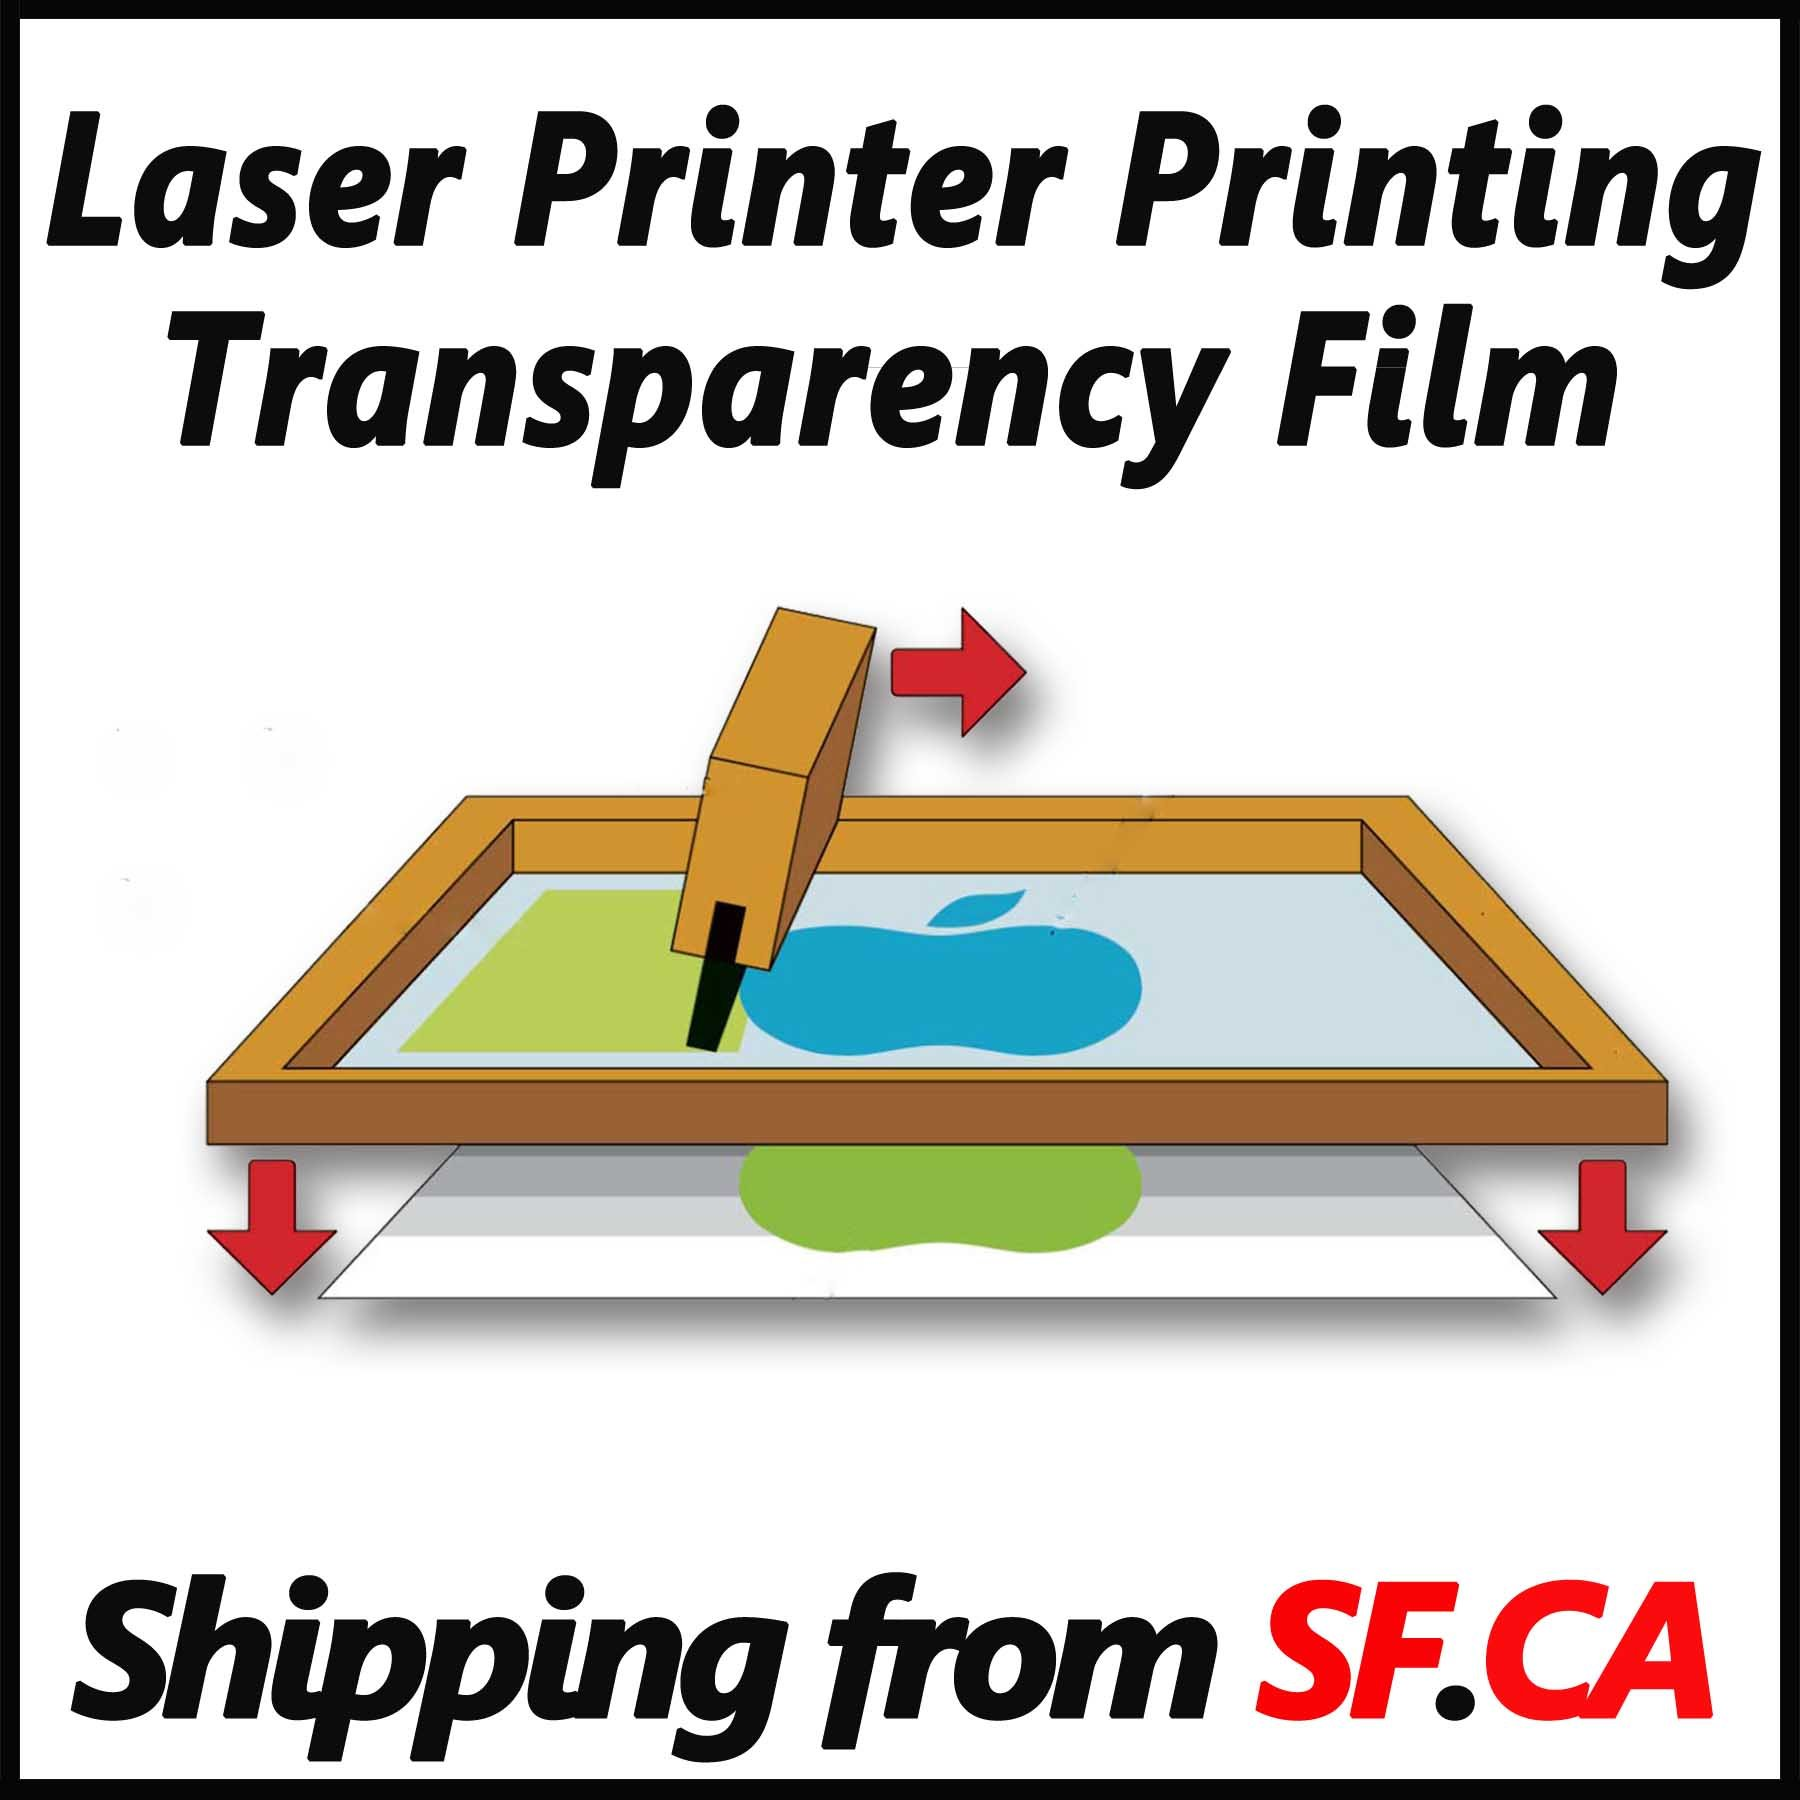 50 Sheets,8.5''x11'',Laser Printer Printing Transparency Film for Silk Screen Printing for Laser HP,Canon,Brother,Oki,EPSON Printers